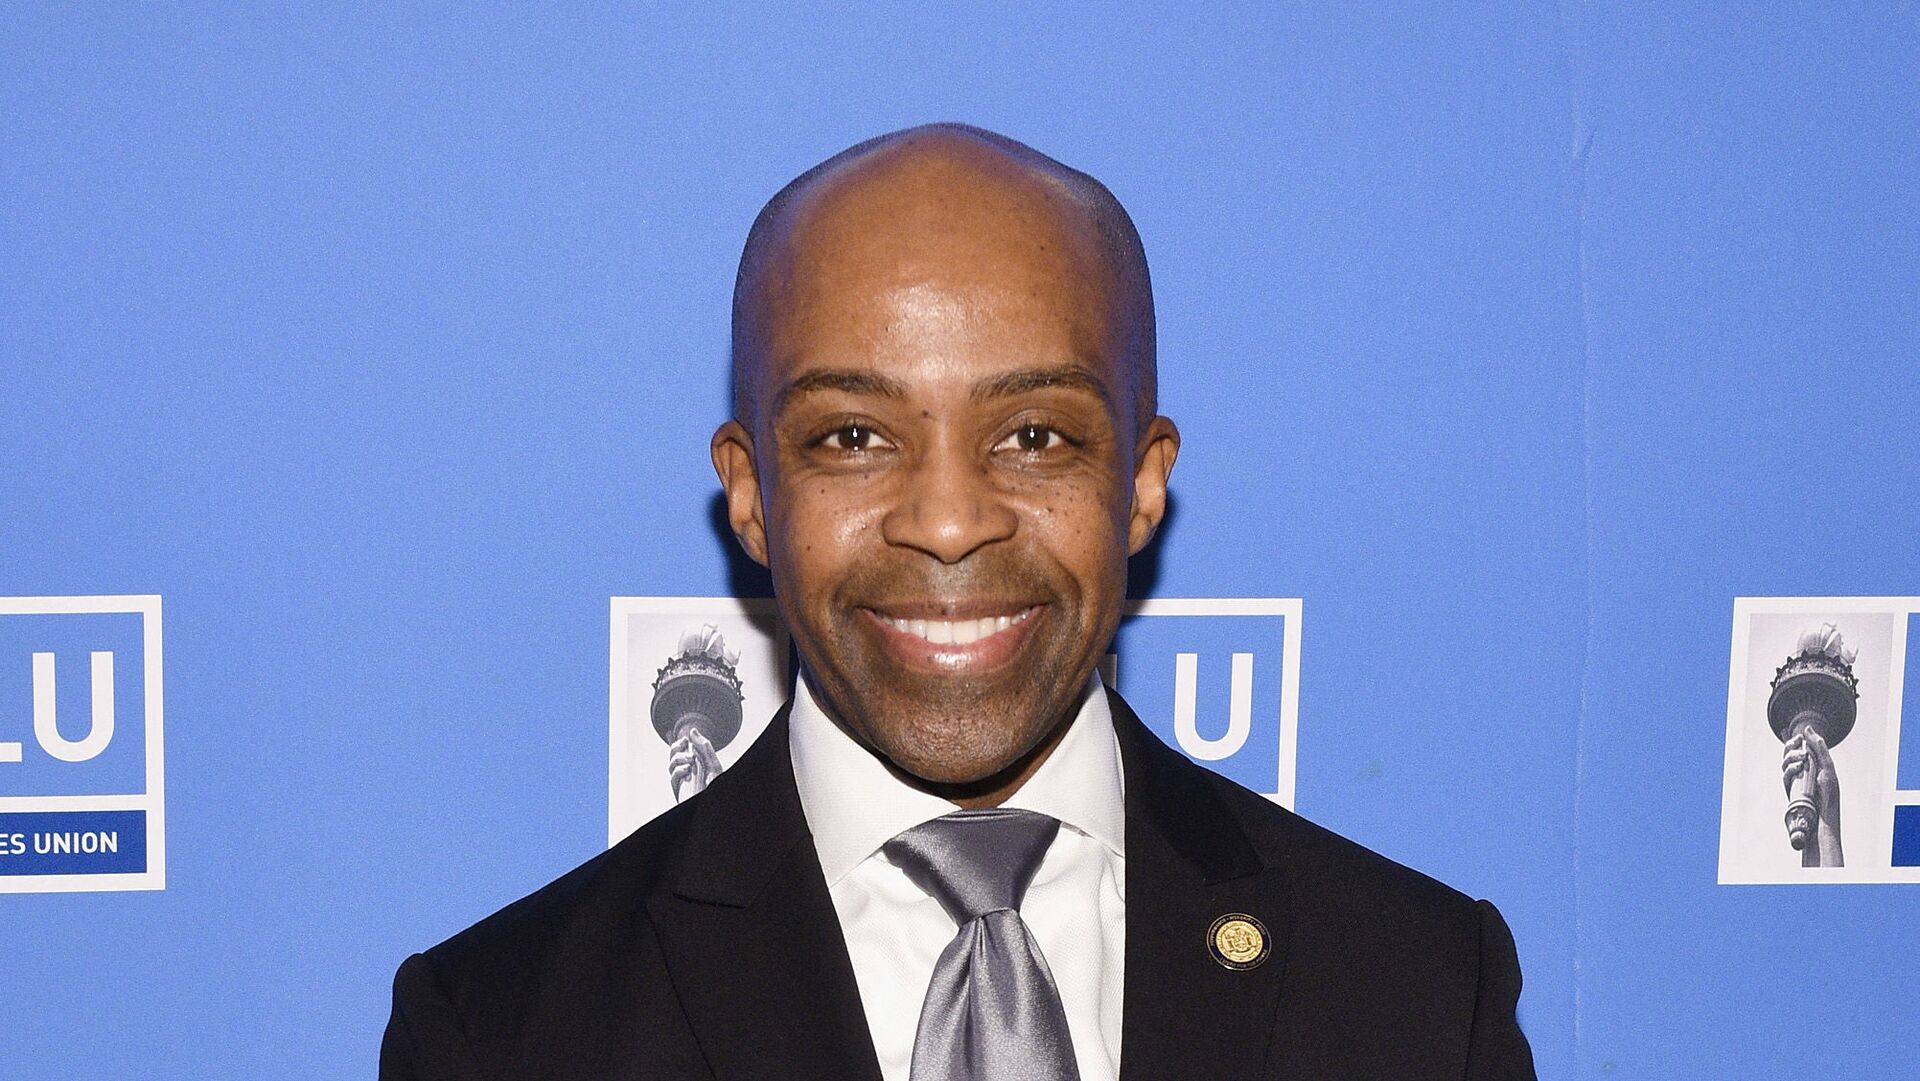 Chief Counsel to the Governor of New York, Alphonso David attends NYCLU's Broadway Stands Up For Freedom concert We The People on October 15, 2018 in New York City. - Sputnik International, 1920, 07.09.2021